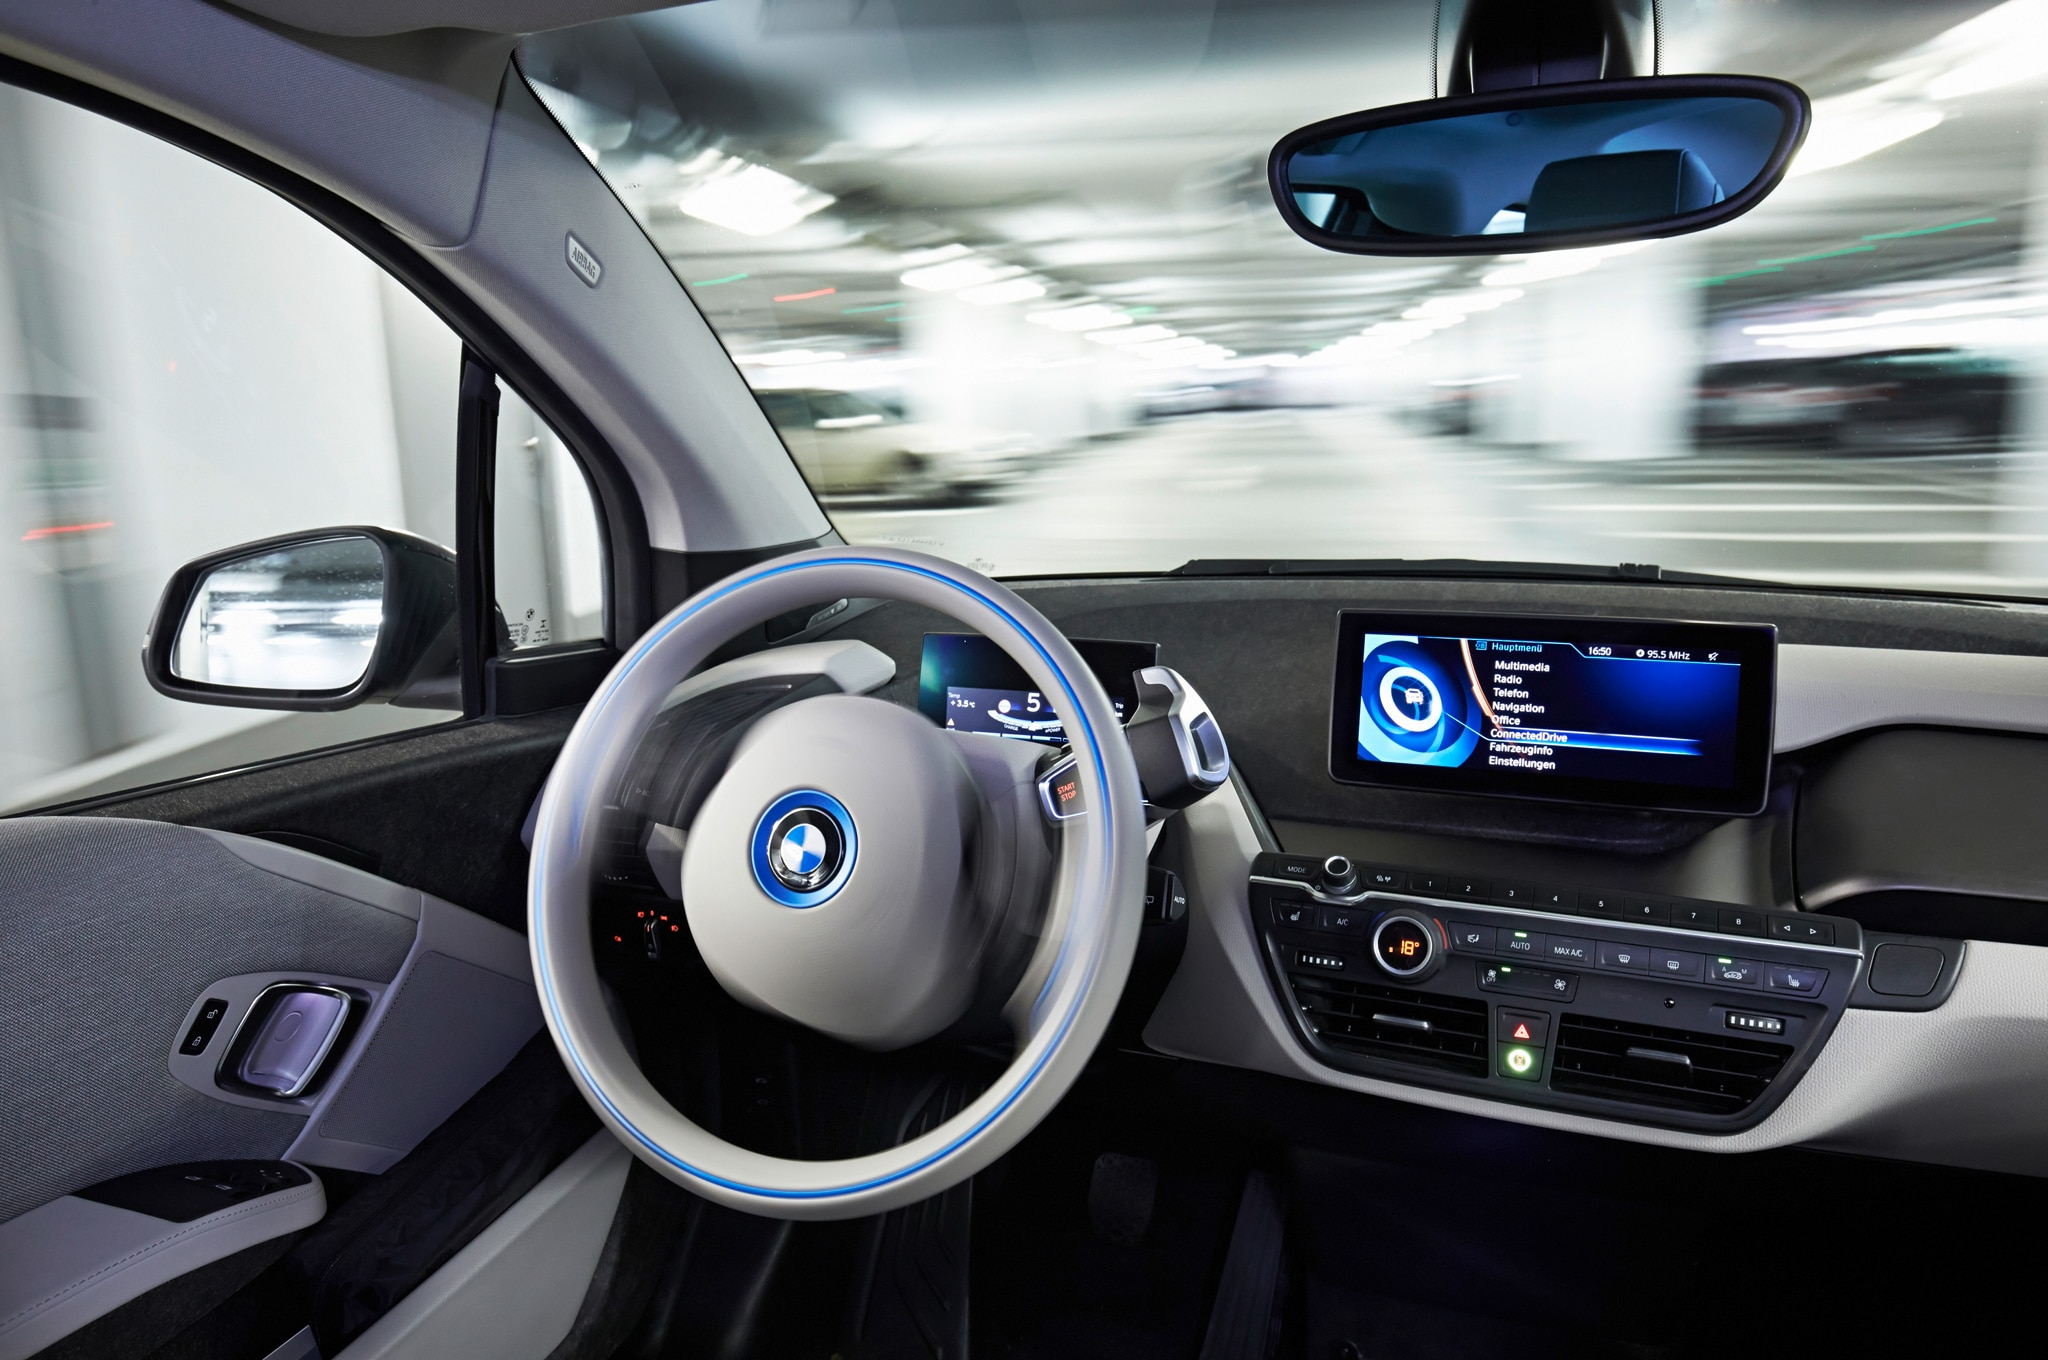 bmw to demonstrate active assist remote valet parking at ces 2015 2014 bmw i3 edrive remote valet parking interior 02